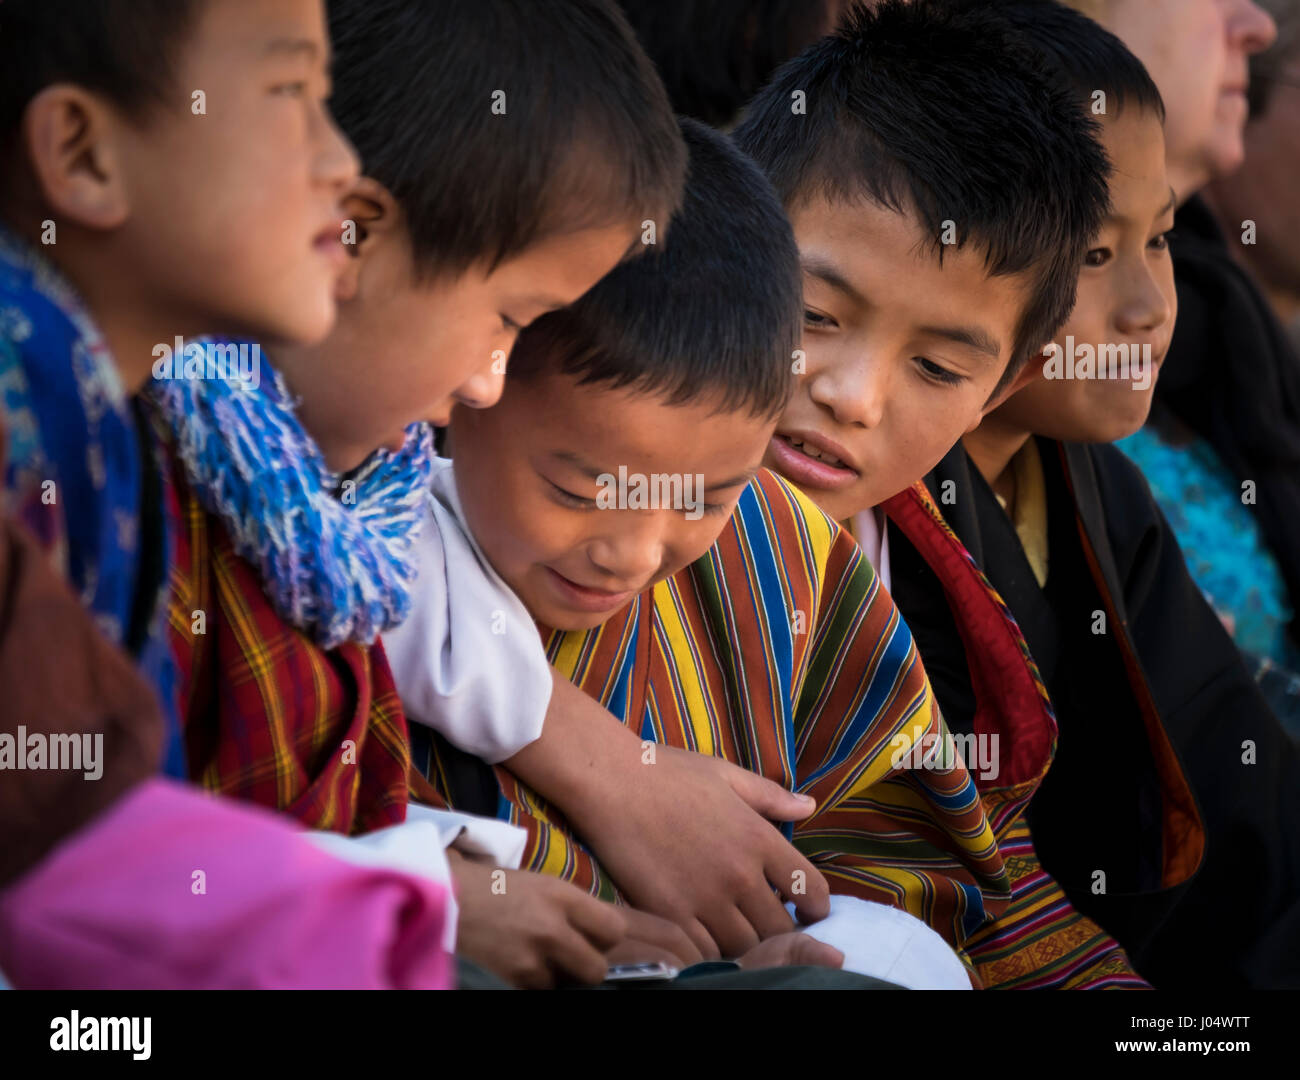 THIMPU, BHUTAN - CIRCA OCTOBER 2014: Portrait of Bhutanese kids playing. - Stock Image